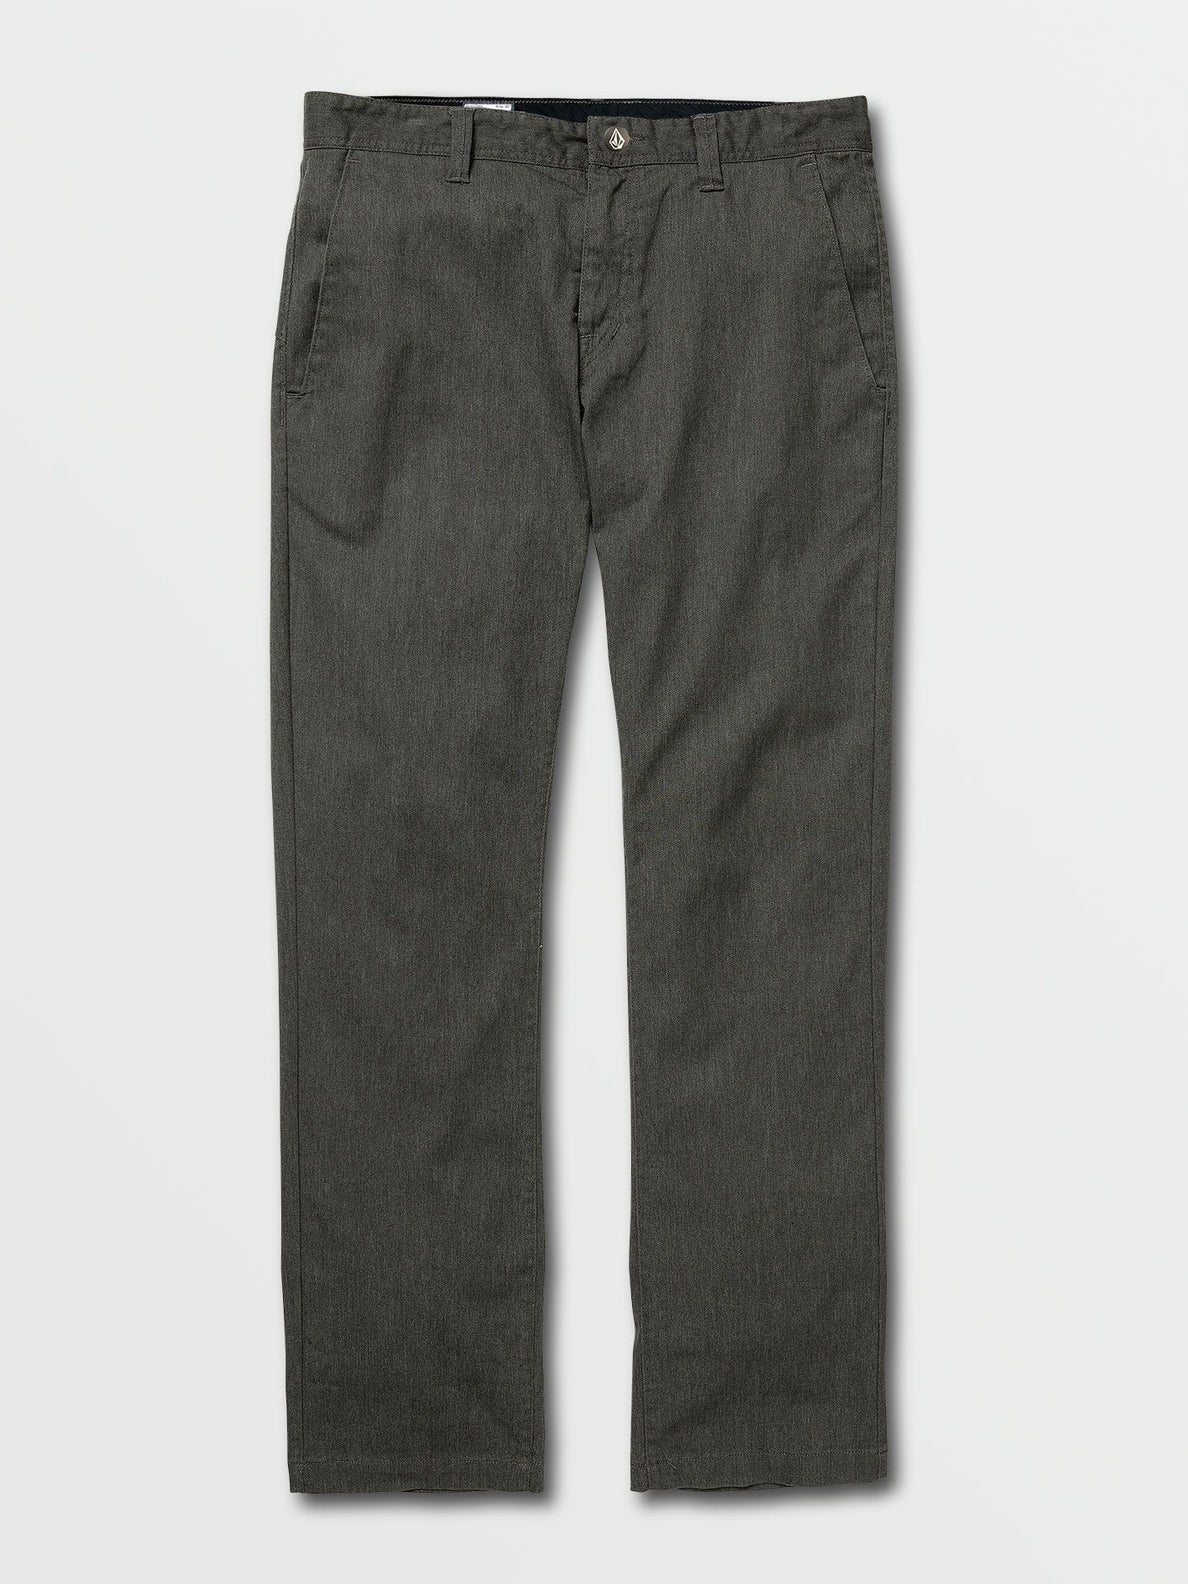 V Monty Pant - Charcoal Heather